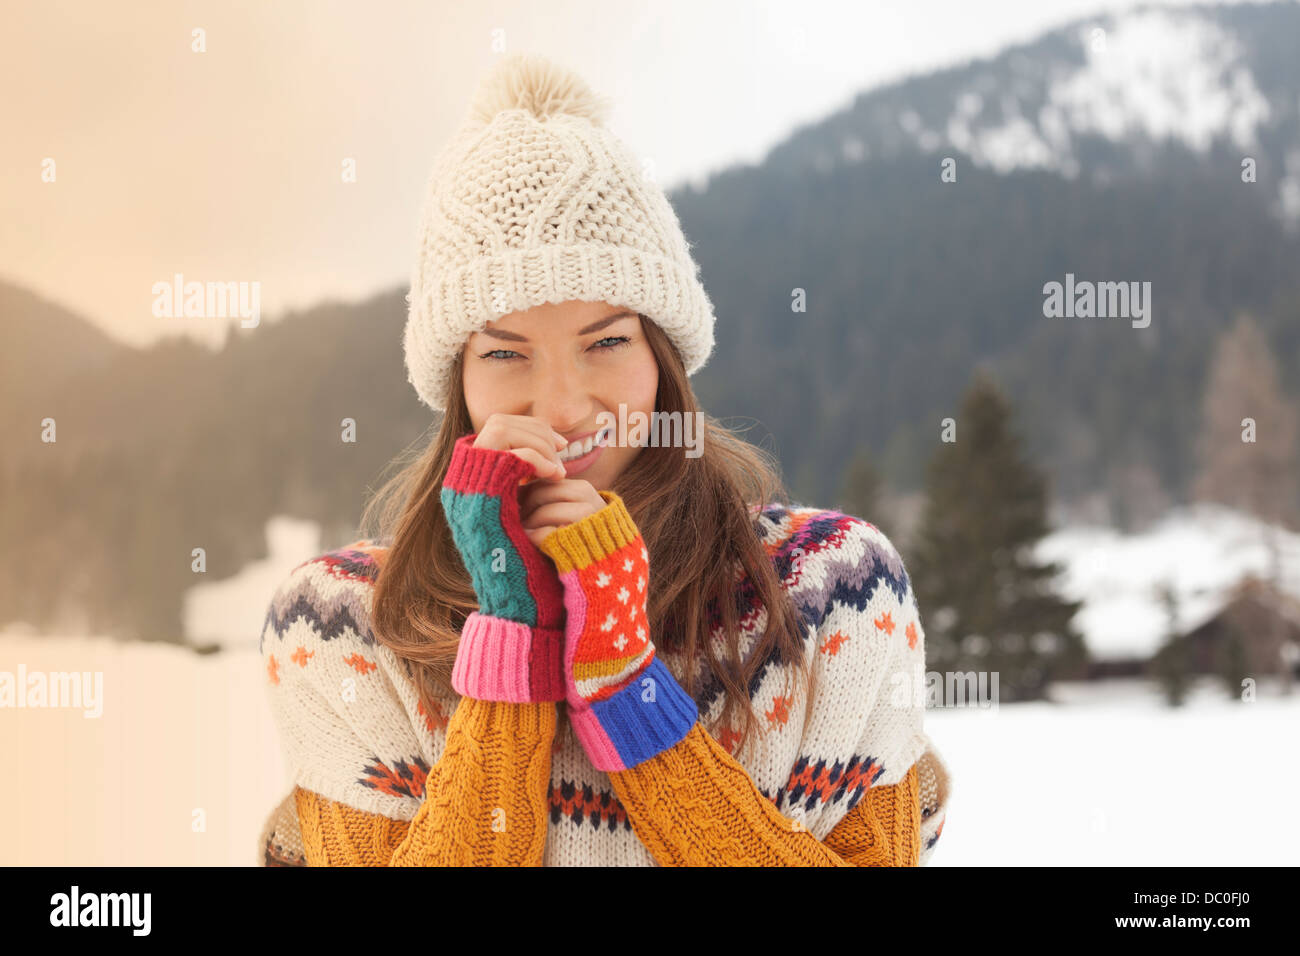 Portrait of smiling woman wearing knit hat in snowy field - Stock Image